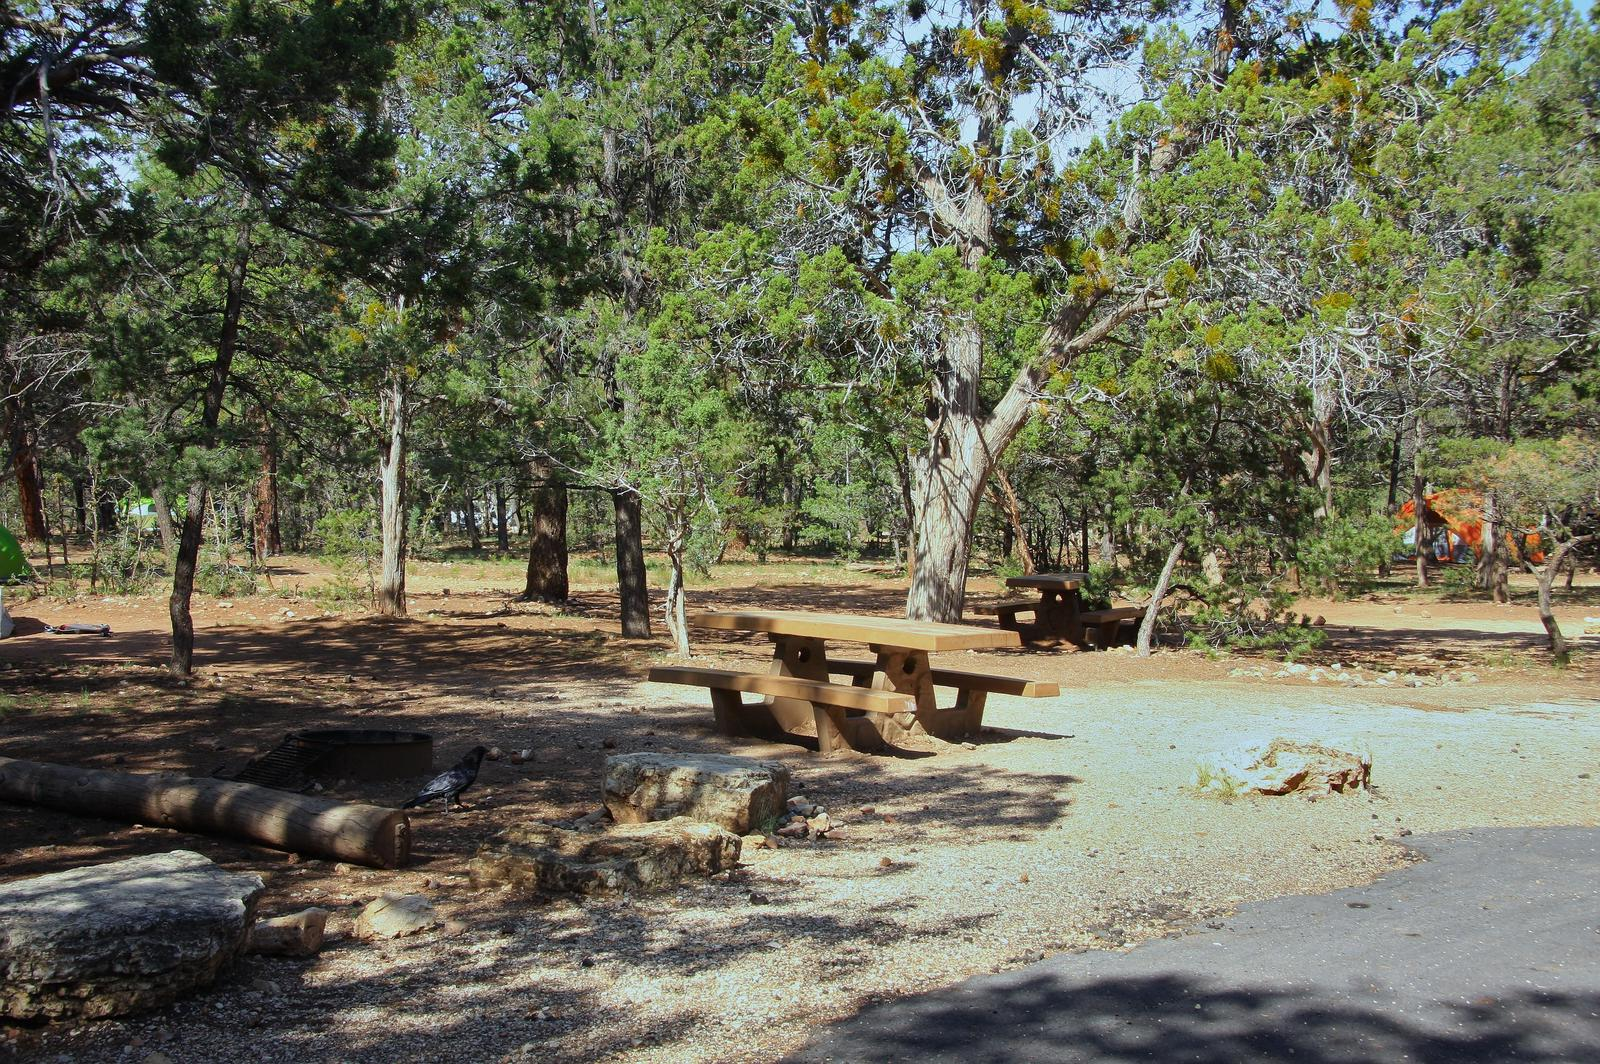 Picnic table, fire pit, and park spot, Mather CampgroundPicnic table, fire pit, and park spot for Oak Loop 230, Mather Campground